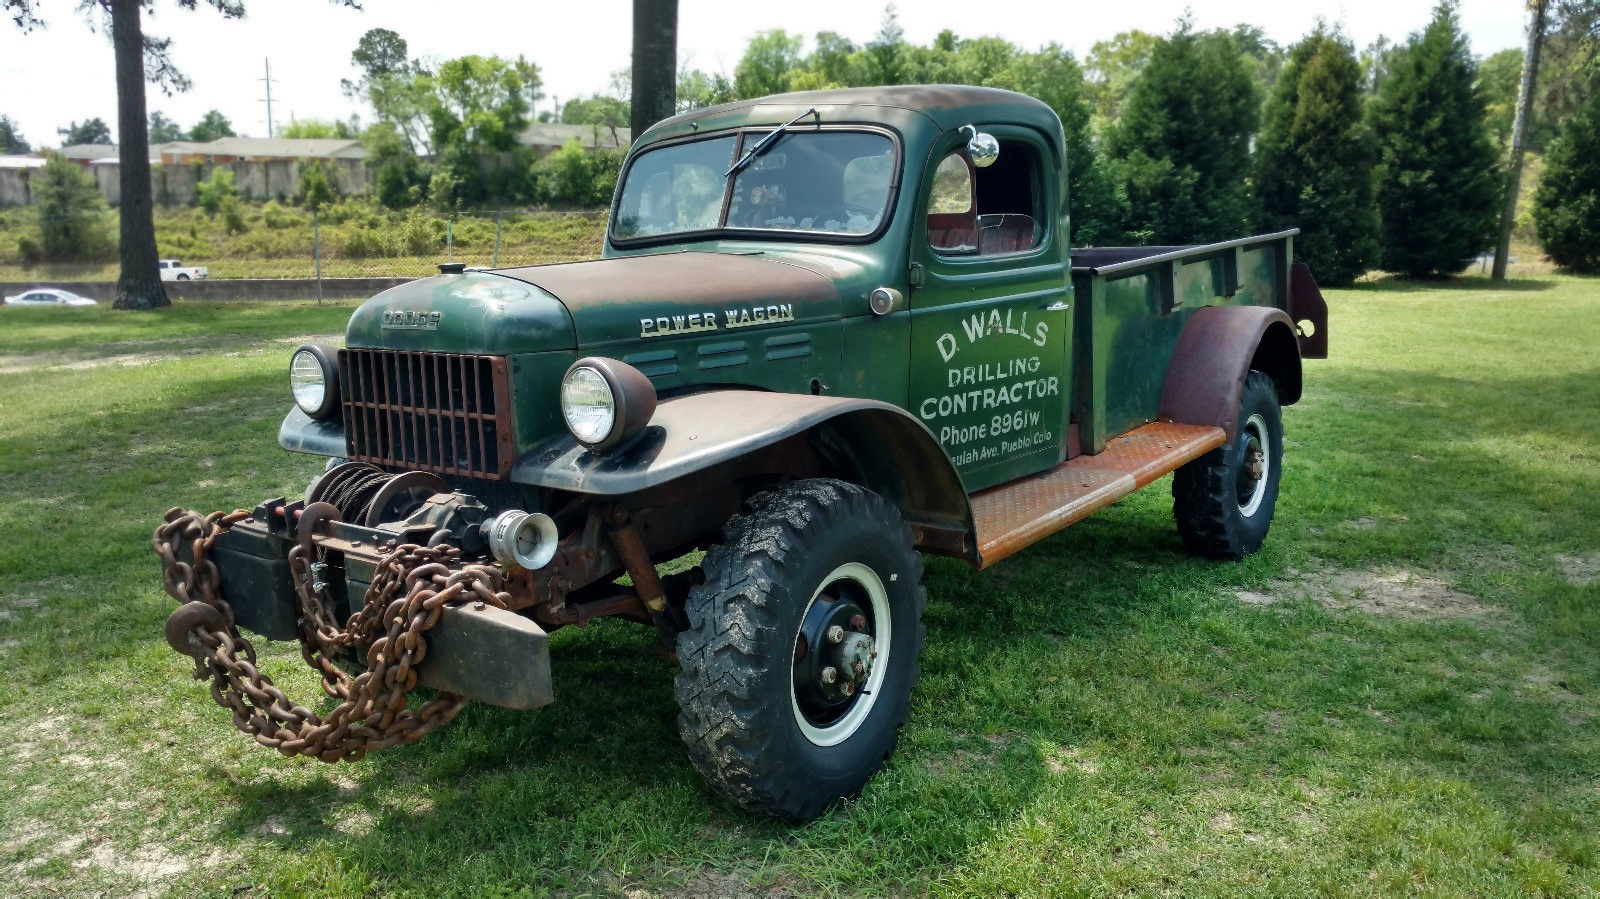 78 Dodge Power Wagon For Sale >> Chains Not Included: 1949 Dodge Power Wagon